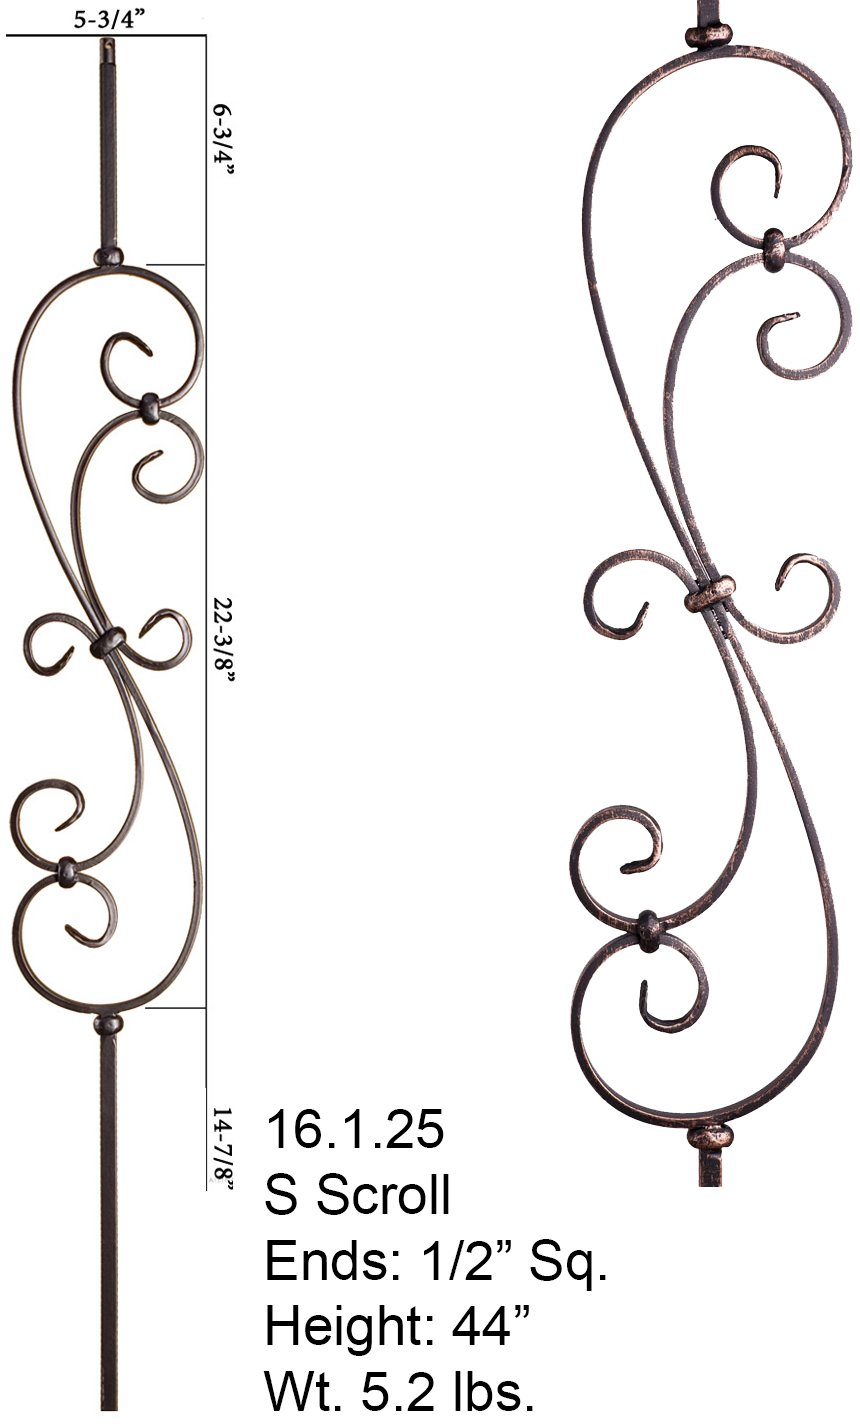 Oil Rubbed Bronze 16.1.25 S-Scroll Iron Baluster for Staircase Remodel , Box of 5 by House of Forgings